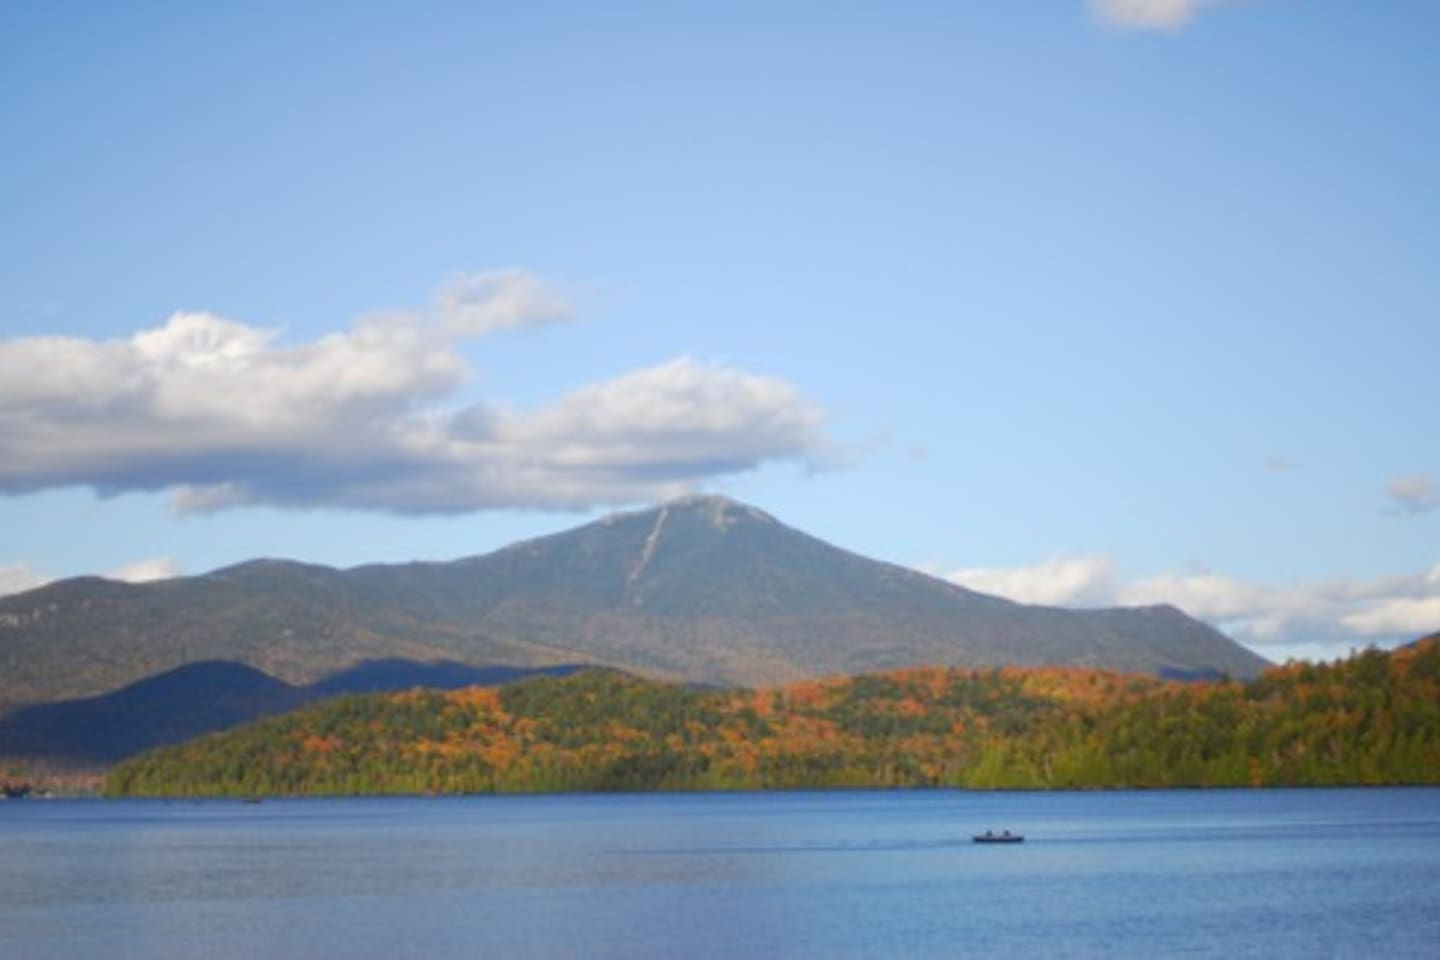 The view of Whiteface Mountain from the Moose Lodge Boathouse